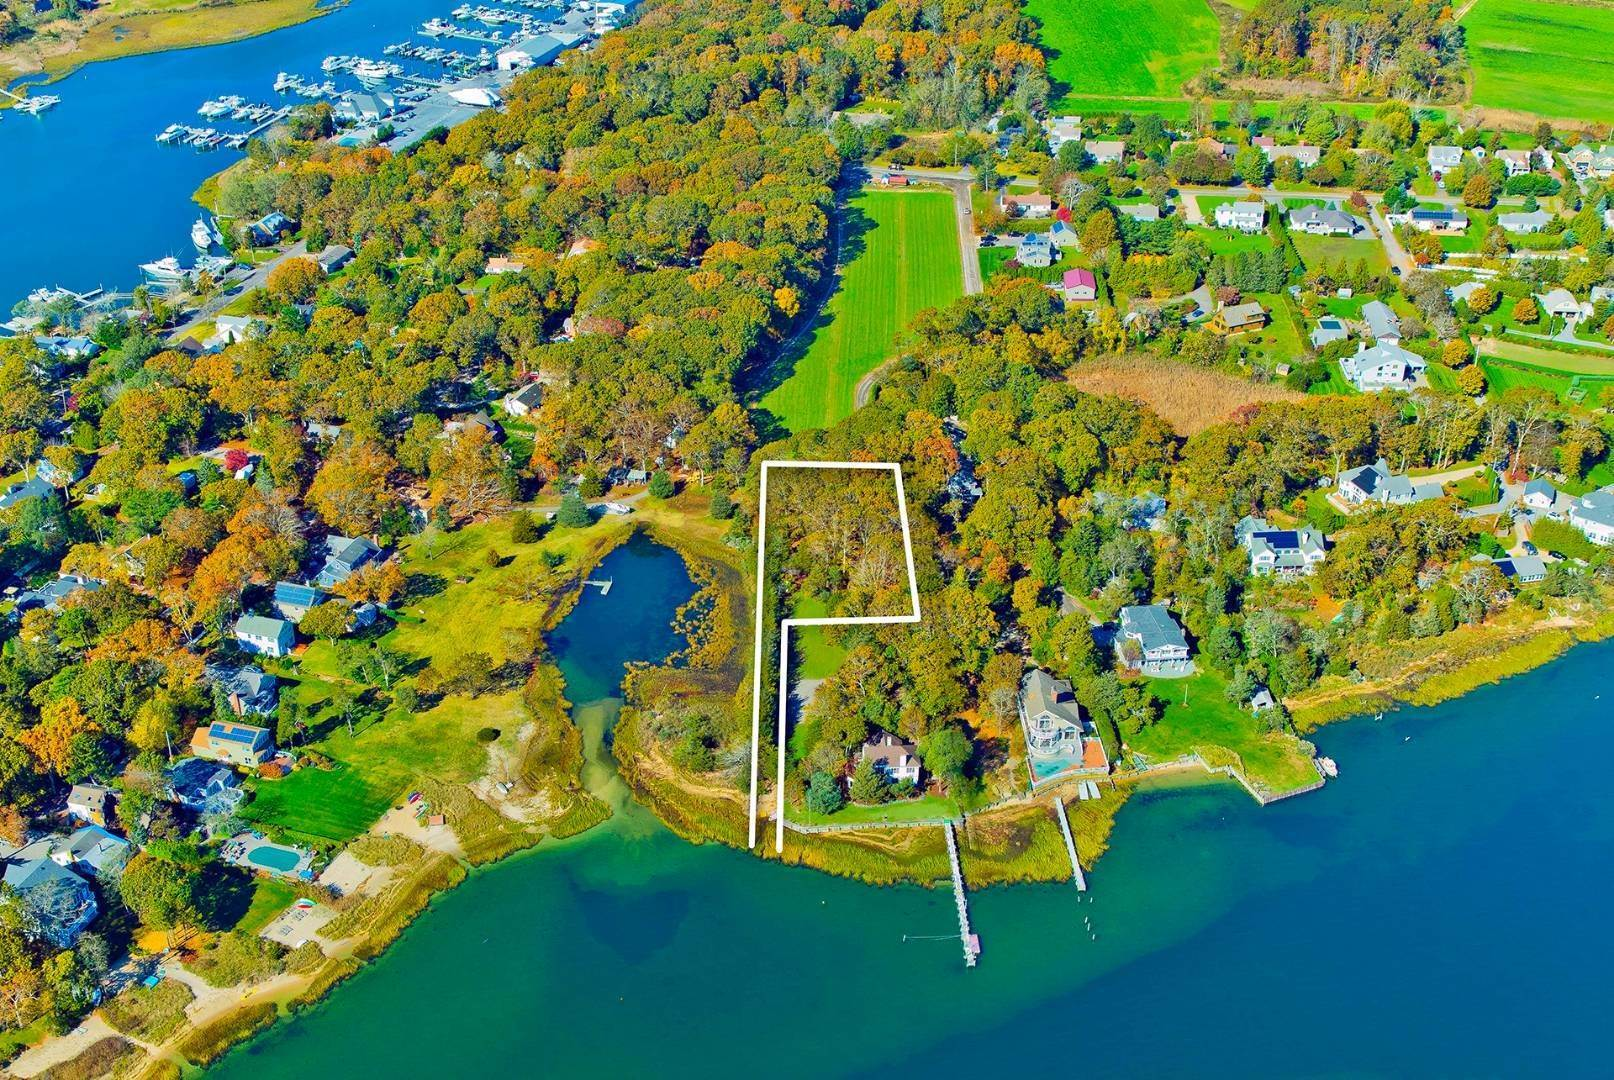 Land for Sale at Aquebogue - Bayfront Land 105a Jacobs Place, Aquebogue, NY 11901